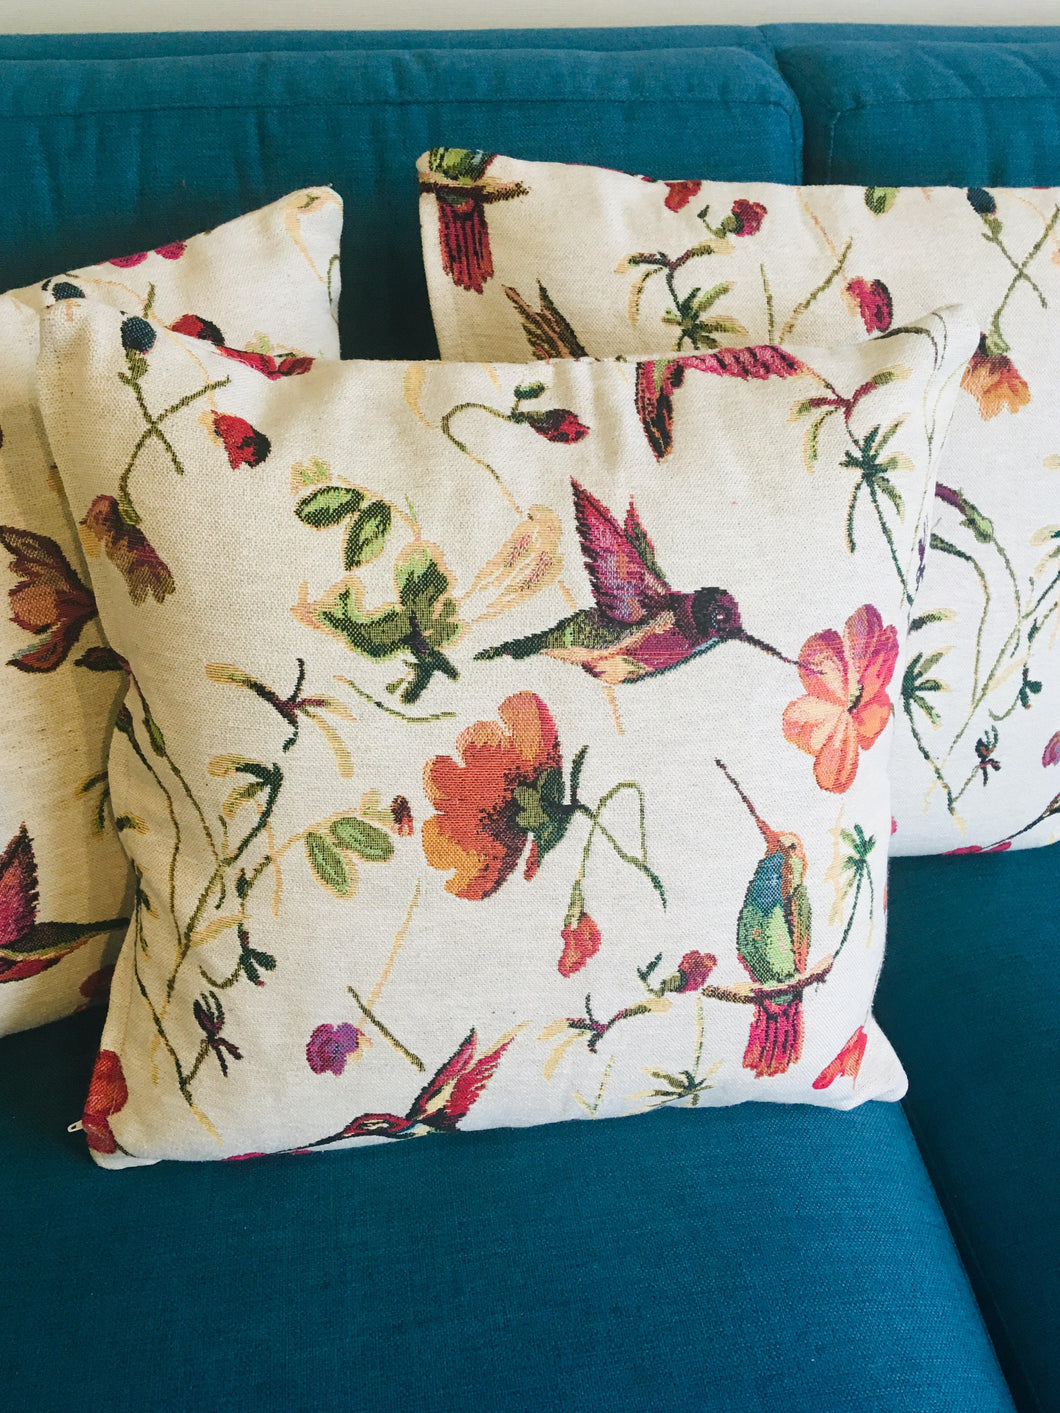 Hummingbird Garden Cushion Covers - LIMITED EDITION